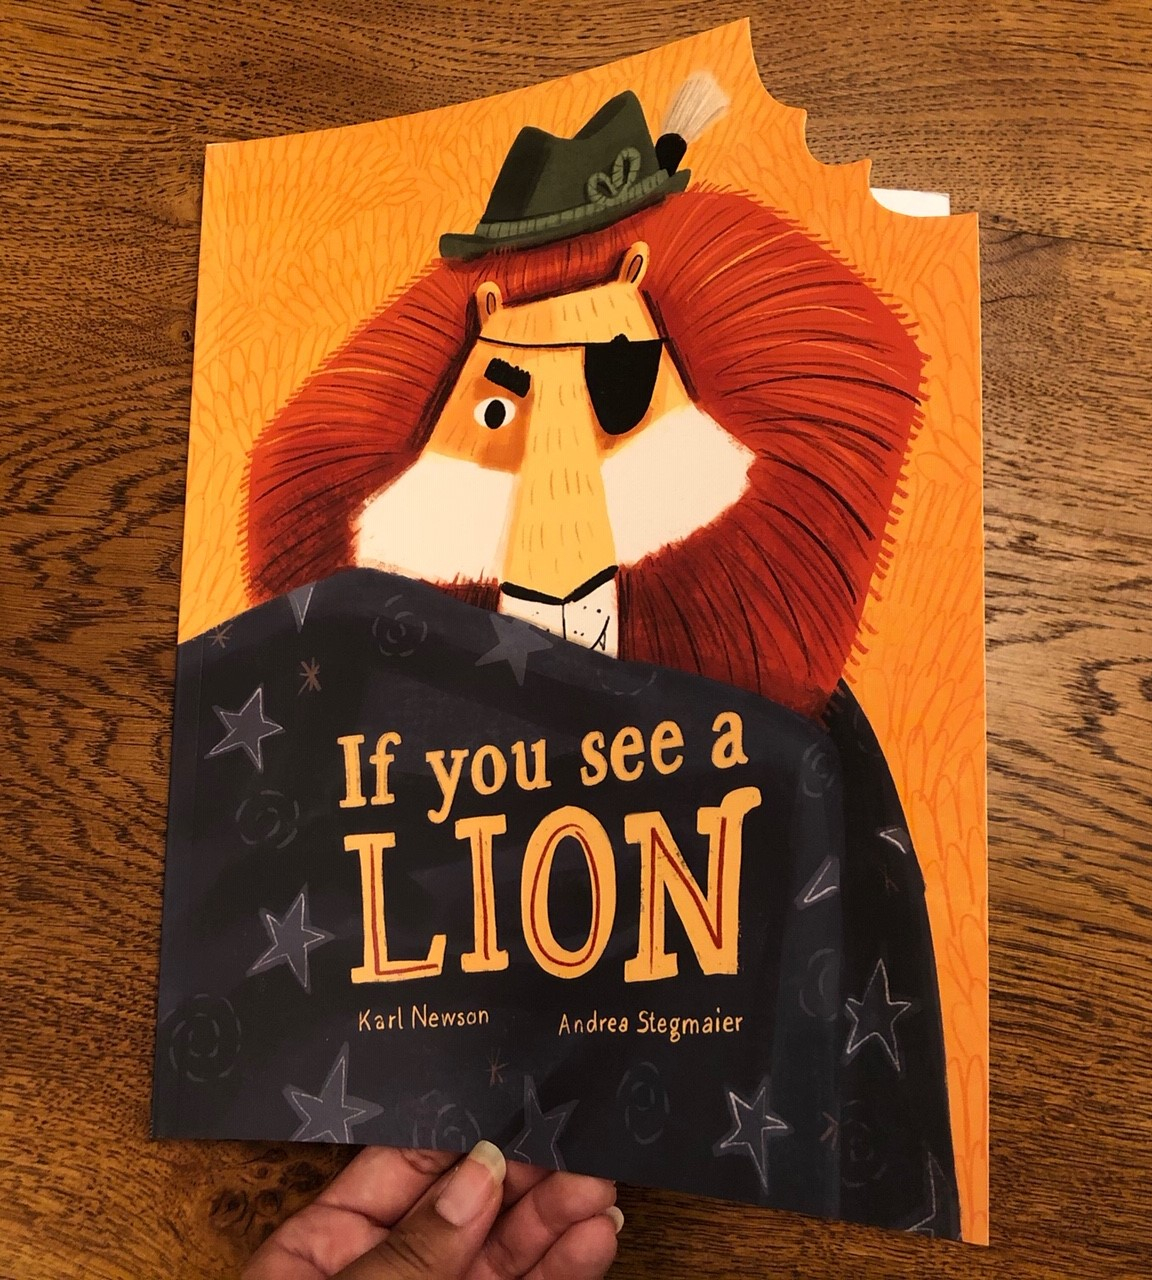 If You See a Lion by Karl Newson and Andrea Stegmaier Quarto